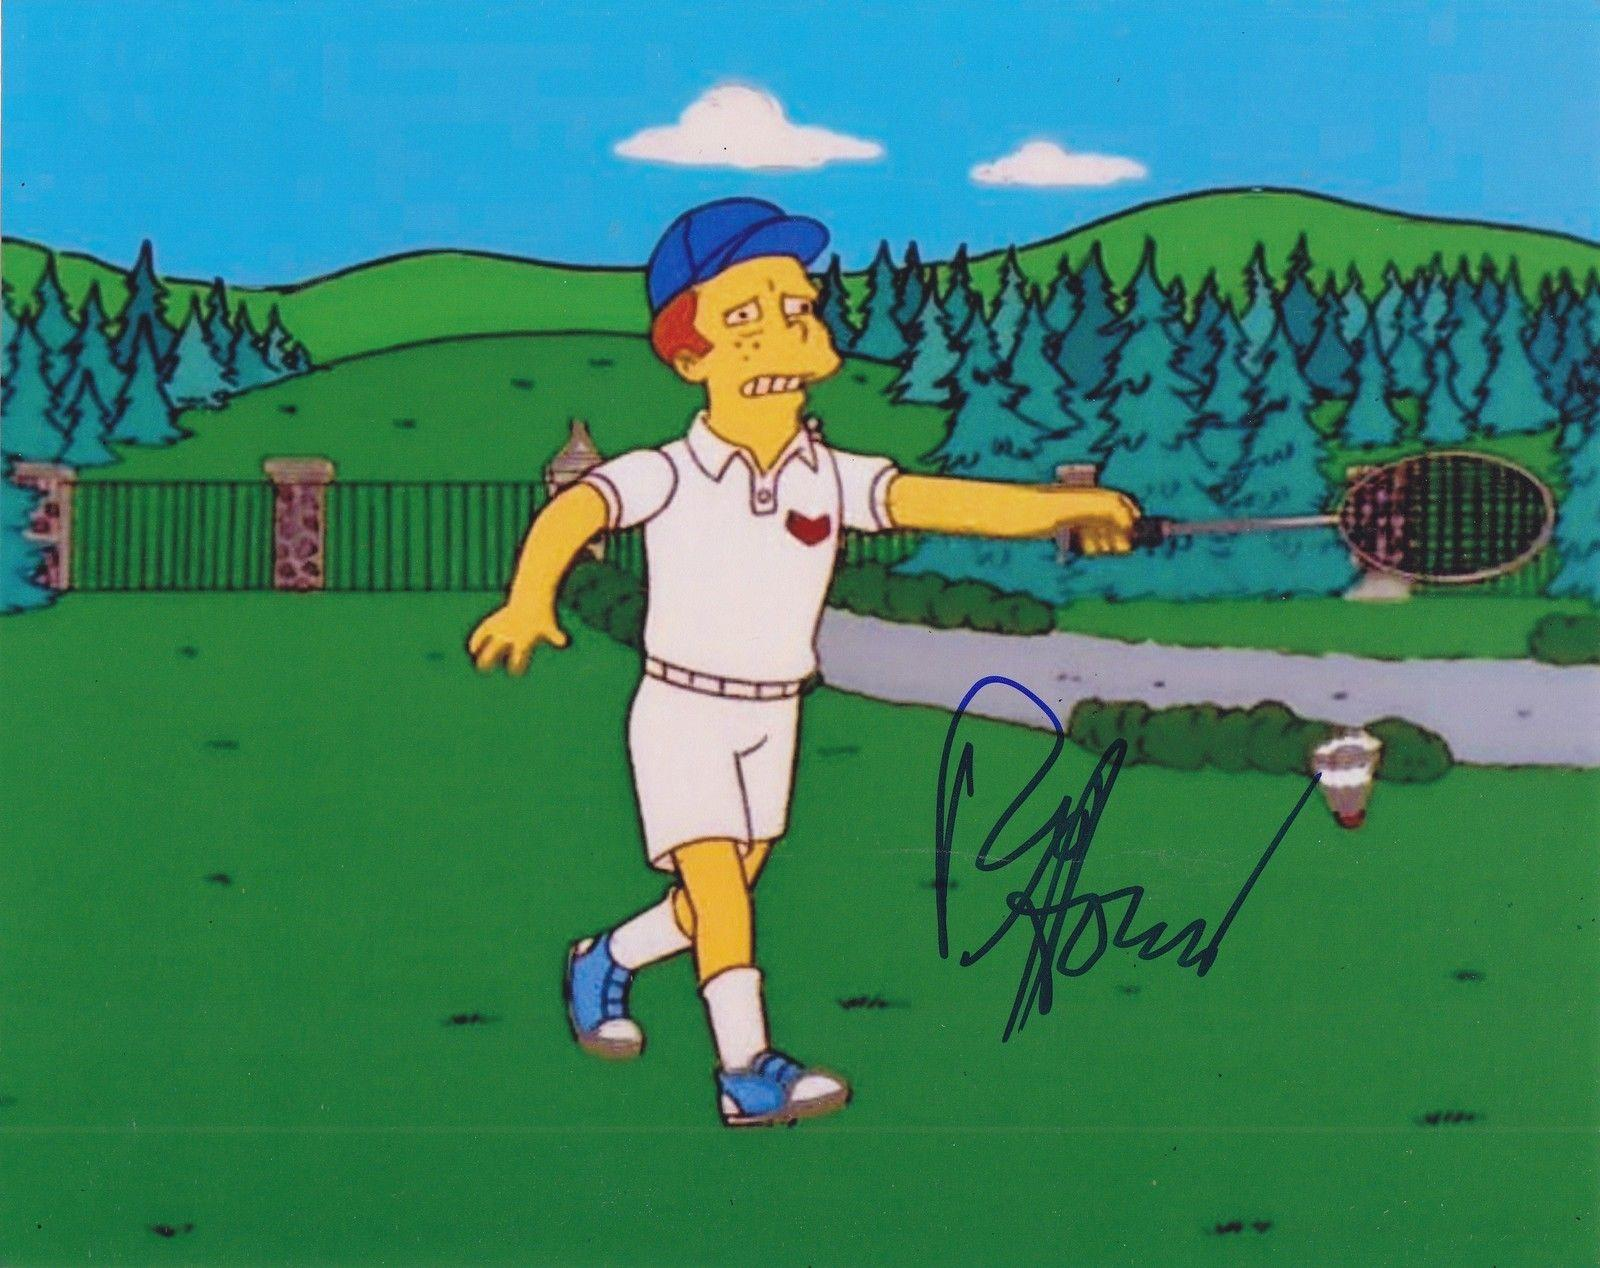 Ron Howard Signed 8x10 Photo w/COA The Simpsons Happy Days Andy Griffith #3